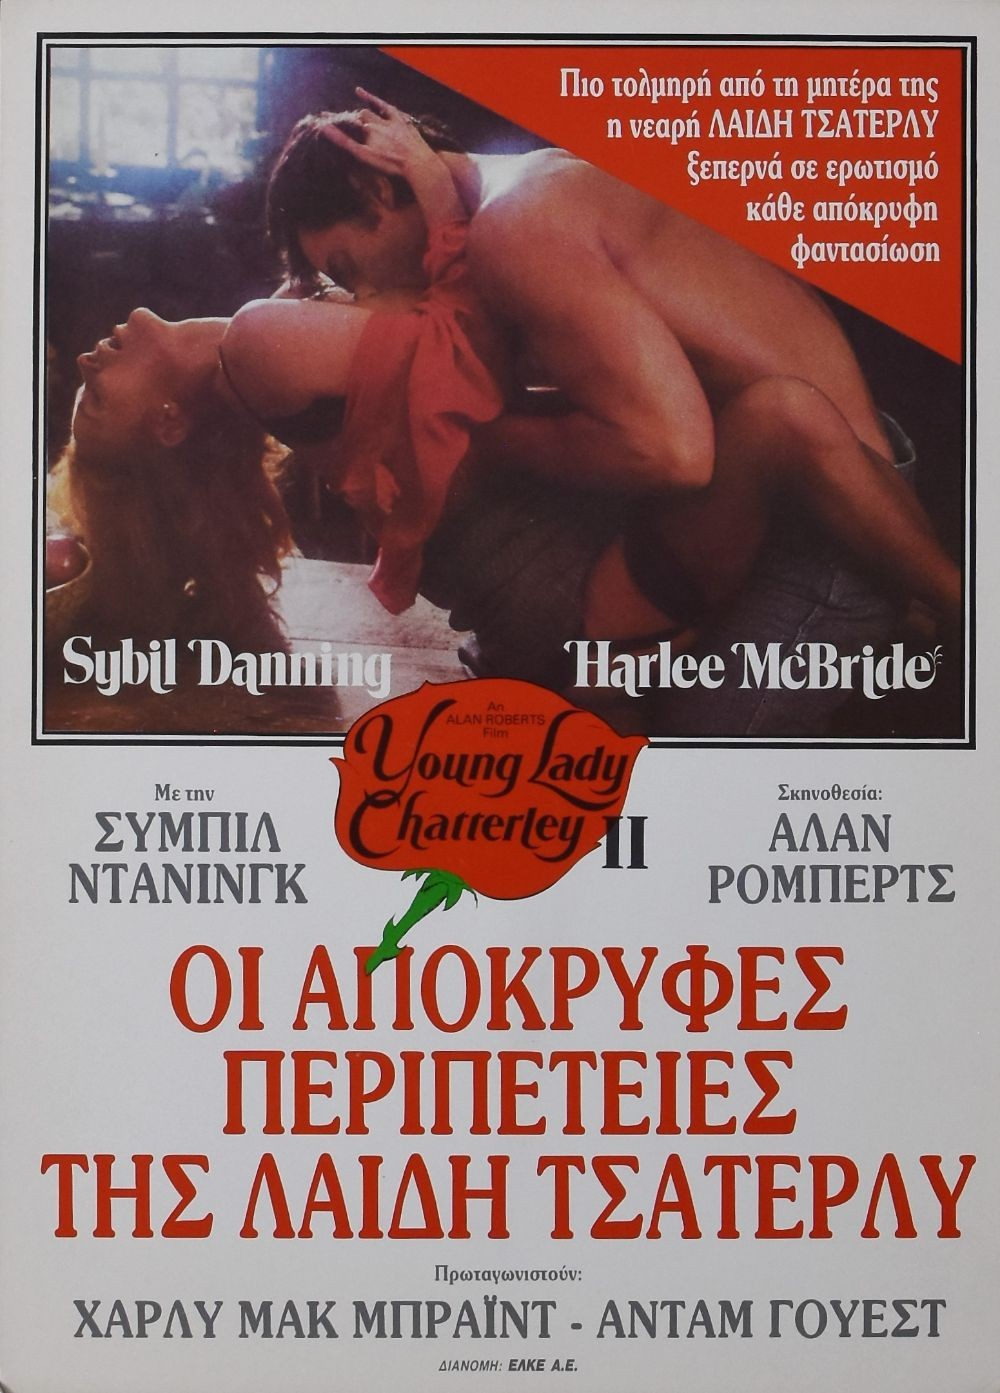 Young Lady Chatterley II original movie poster